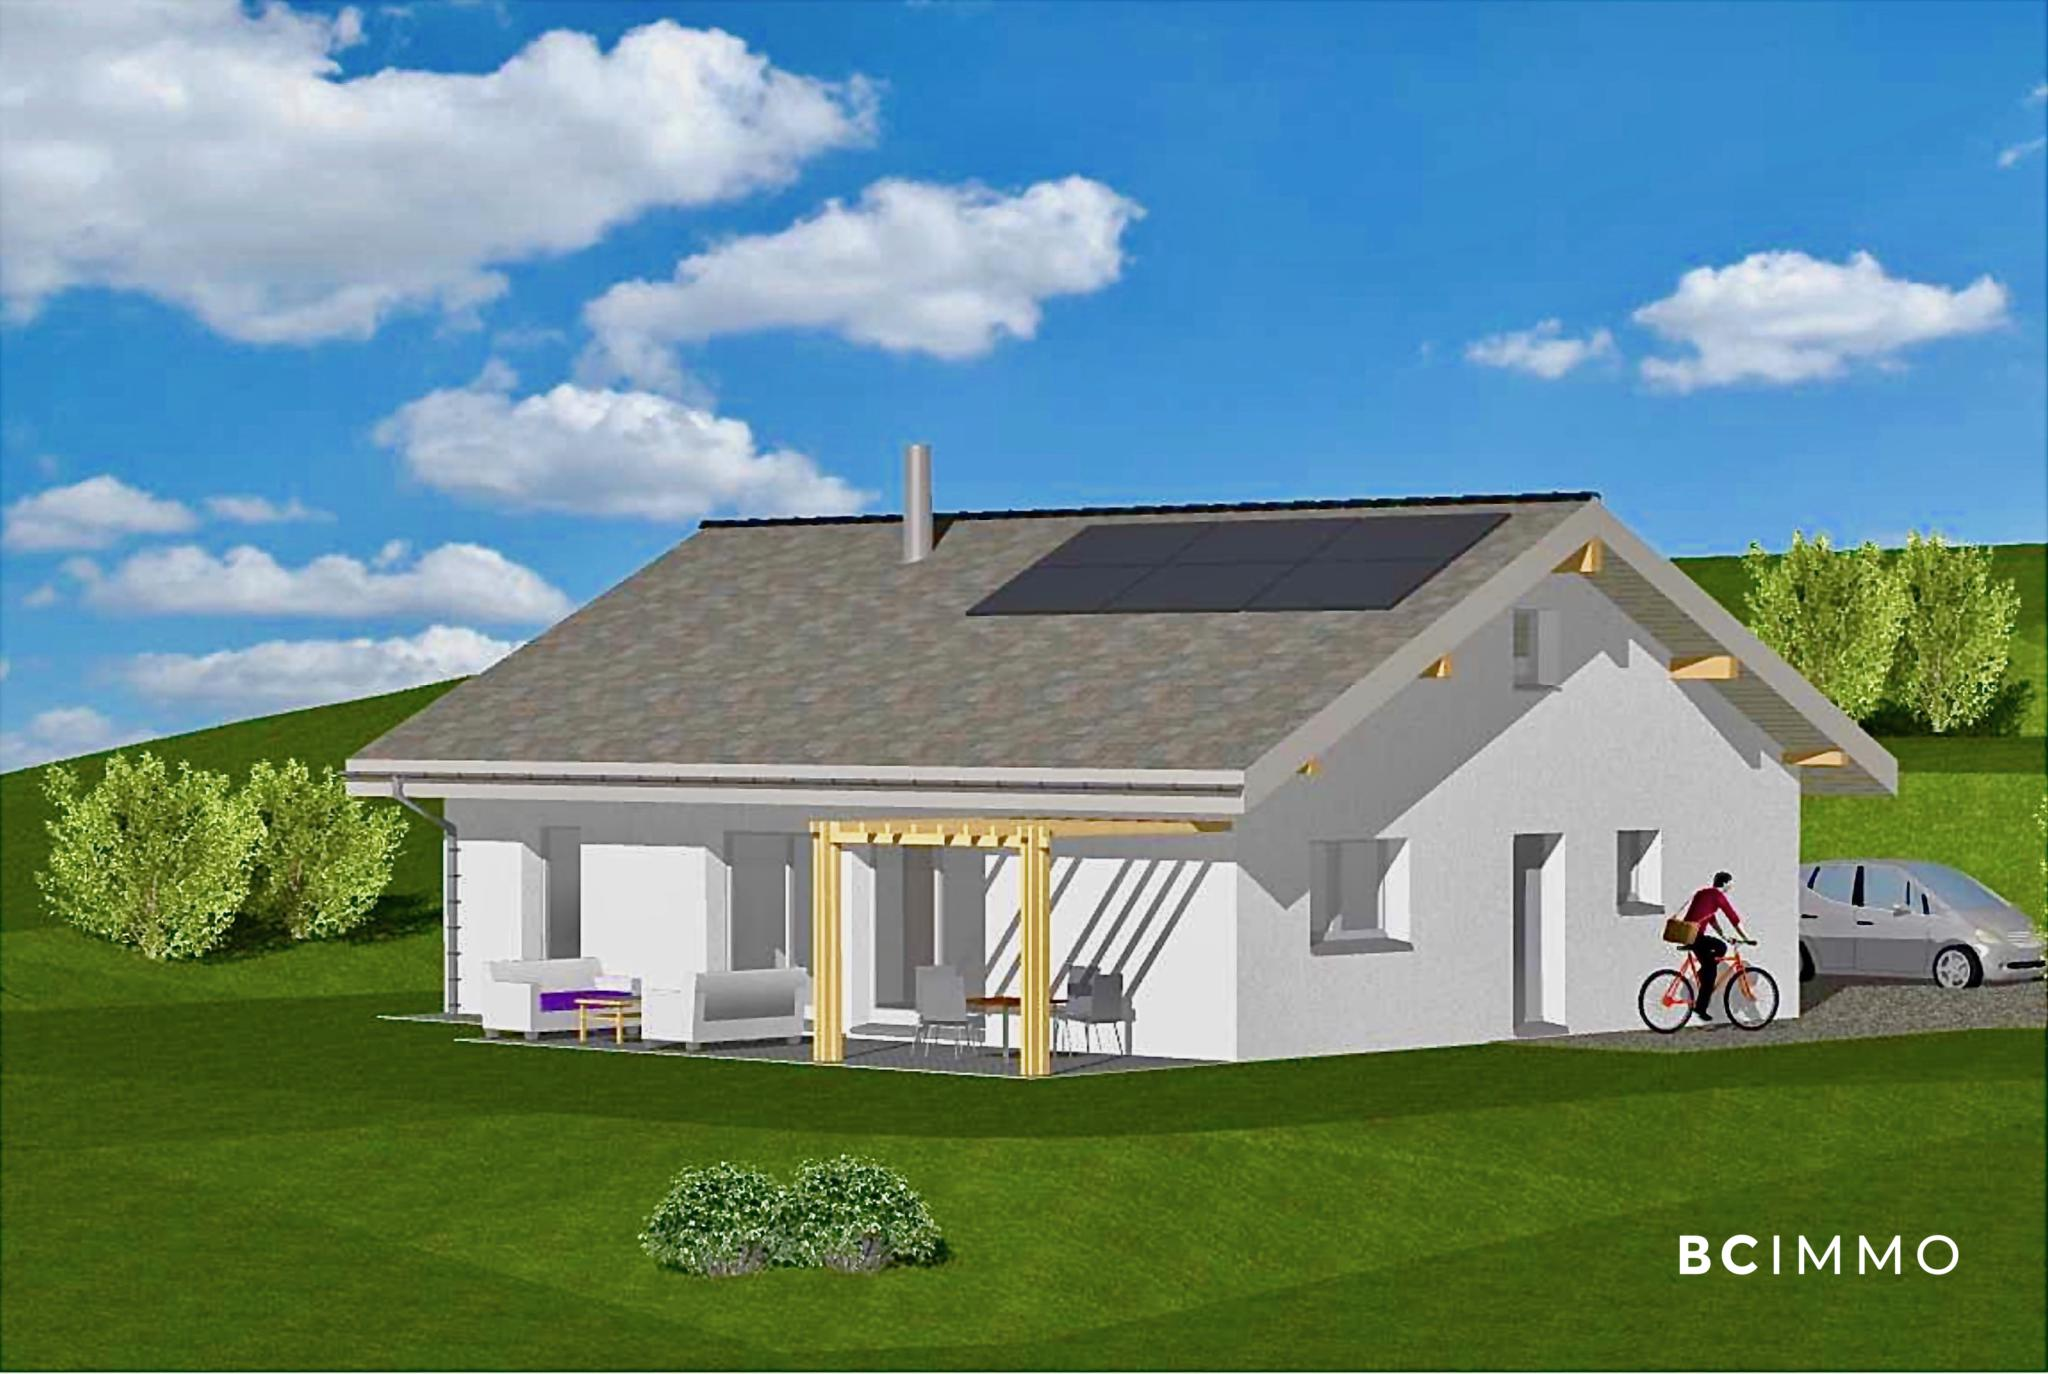 BC Immo - New project: Between town and countryside - Beautiful detached villa off-plan - 1264KG18